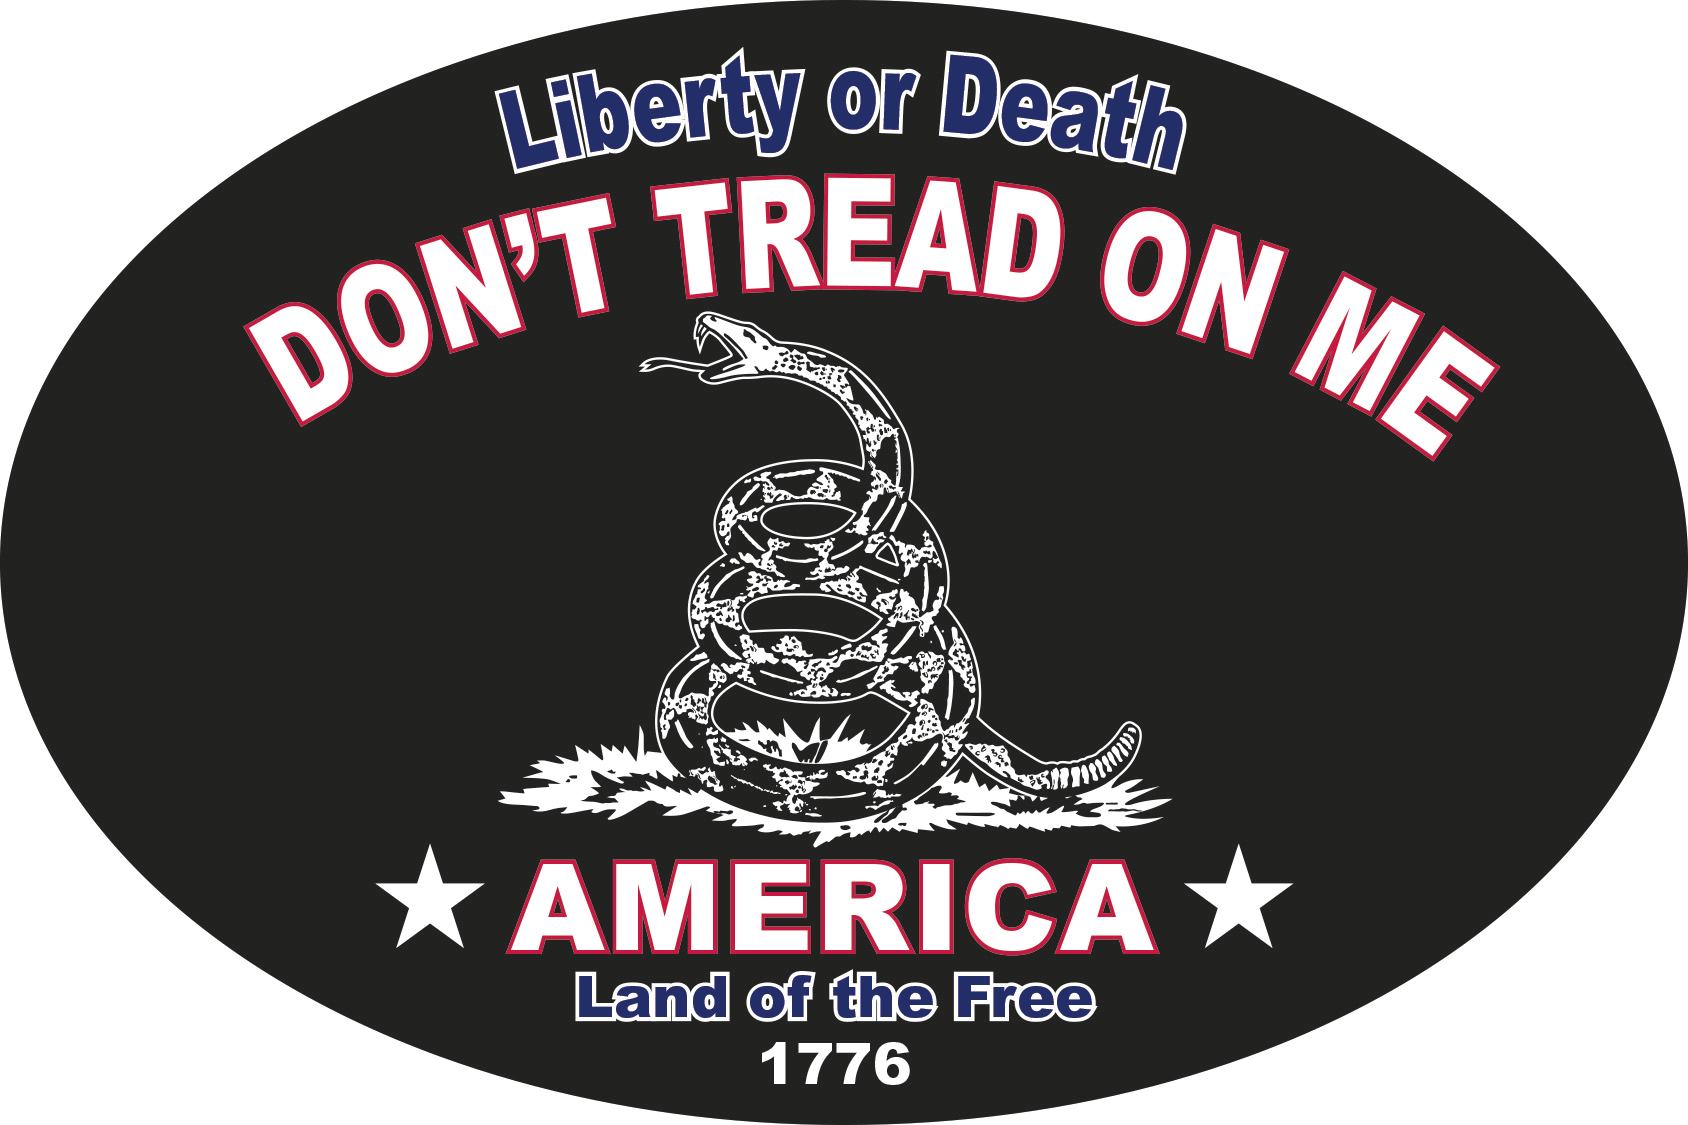 LIBERTY OR DEATH AMERICA OVAL LAND OF THE FREE 1776 PATRIOT BLACK TACTICAL  DON'T TREAD ON ME BUMPER STICKERS PACK OF 50 WHOLESALE